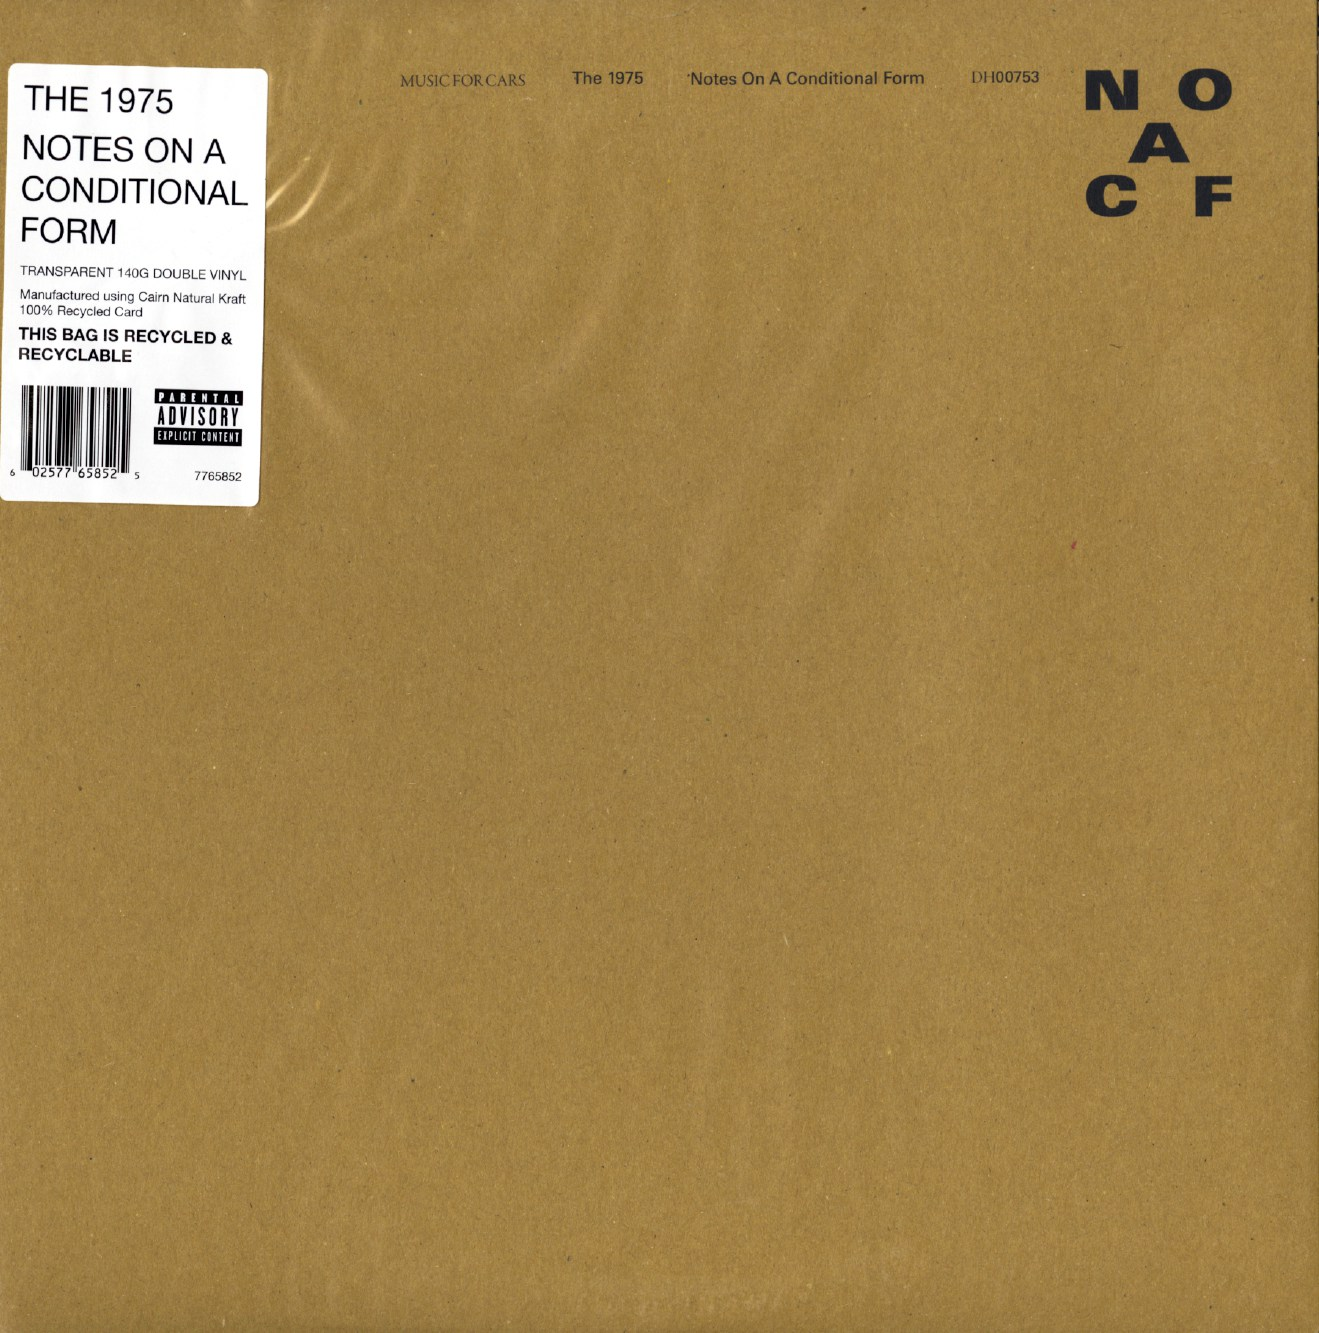 The 1975 - Notes On A Conditional Form - Limited Edition, Clear Vinyl, Double LP, Dirty Hit, 2020